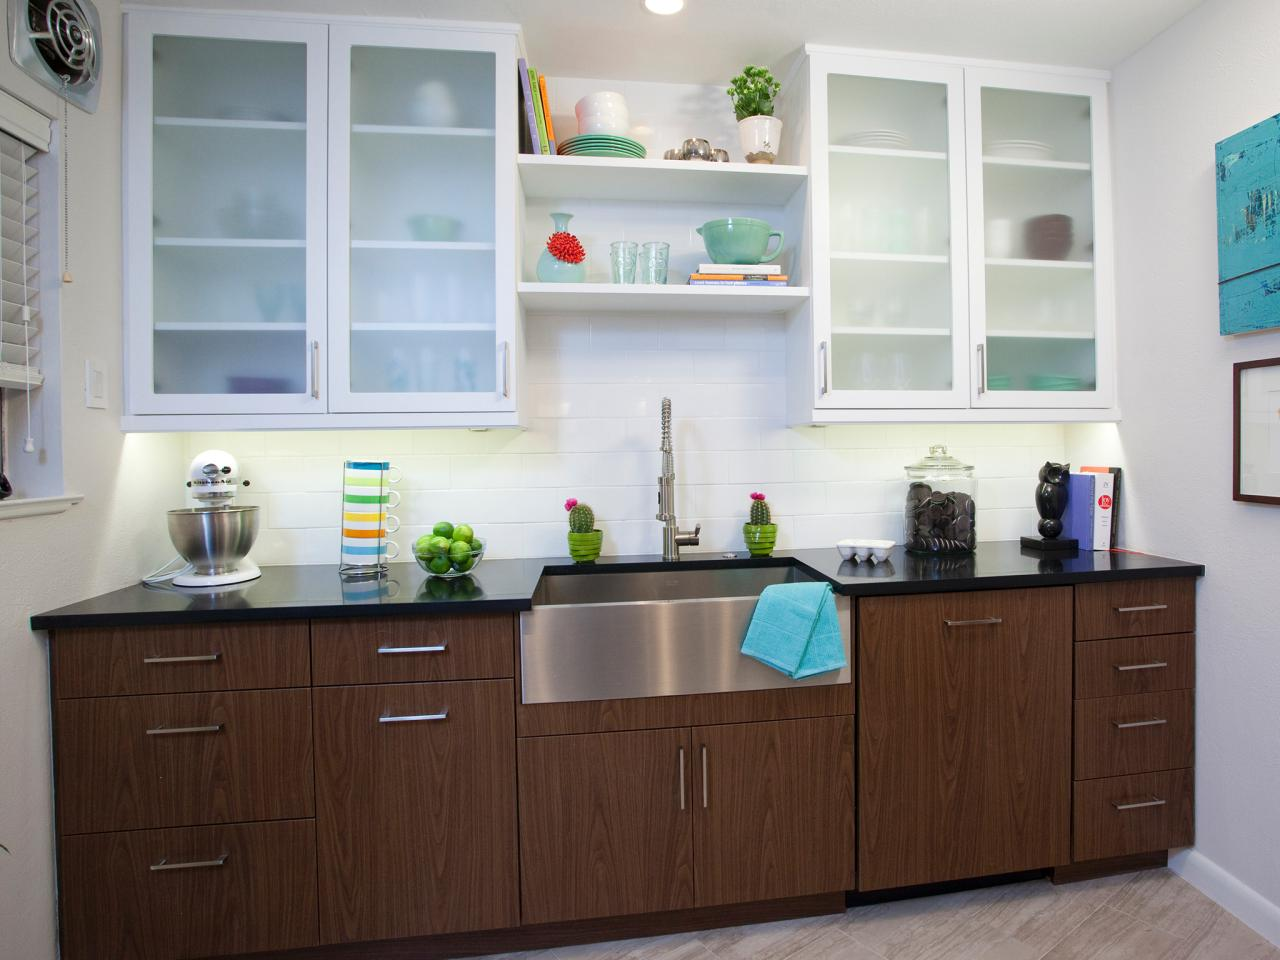 HPBRS409H_modern-white-kitchen-glass-cabinets_4x3.jpg.rend.hgtvcom.1280.960